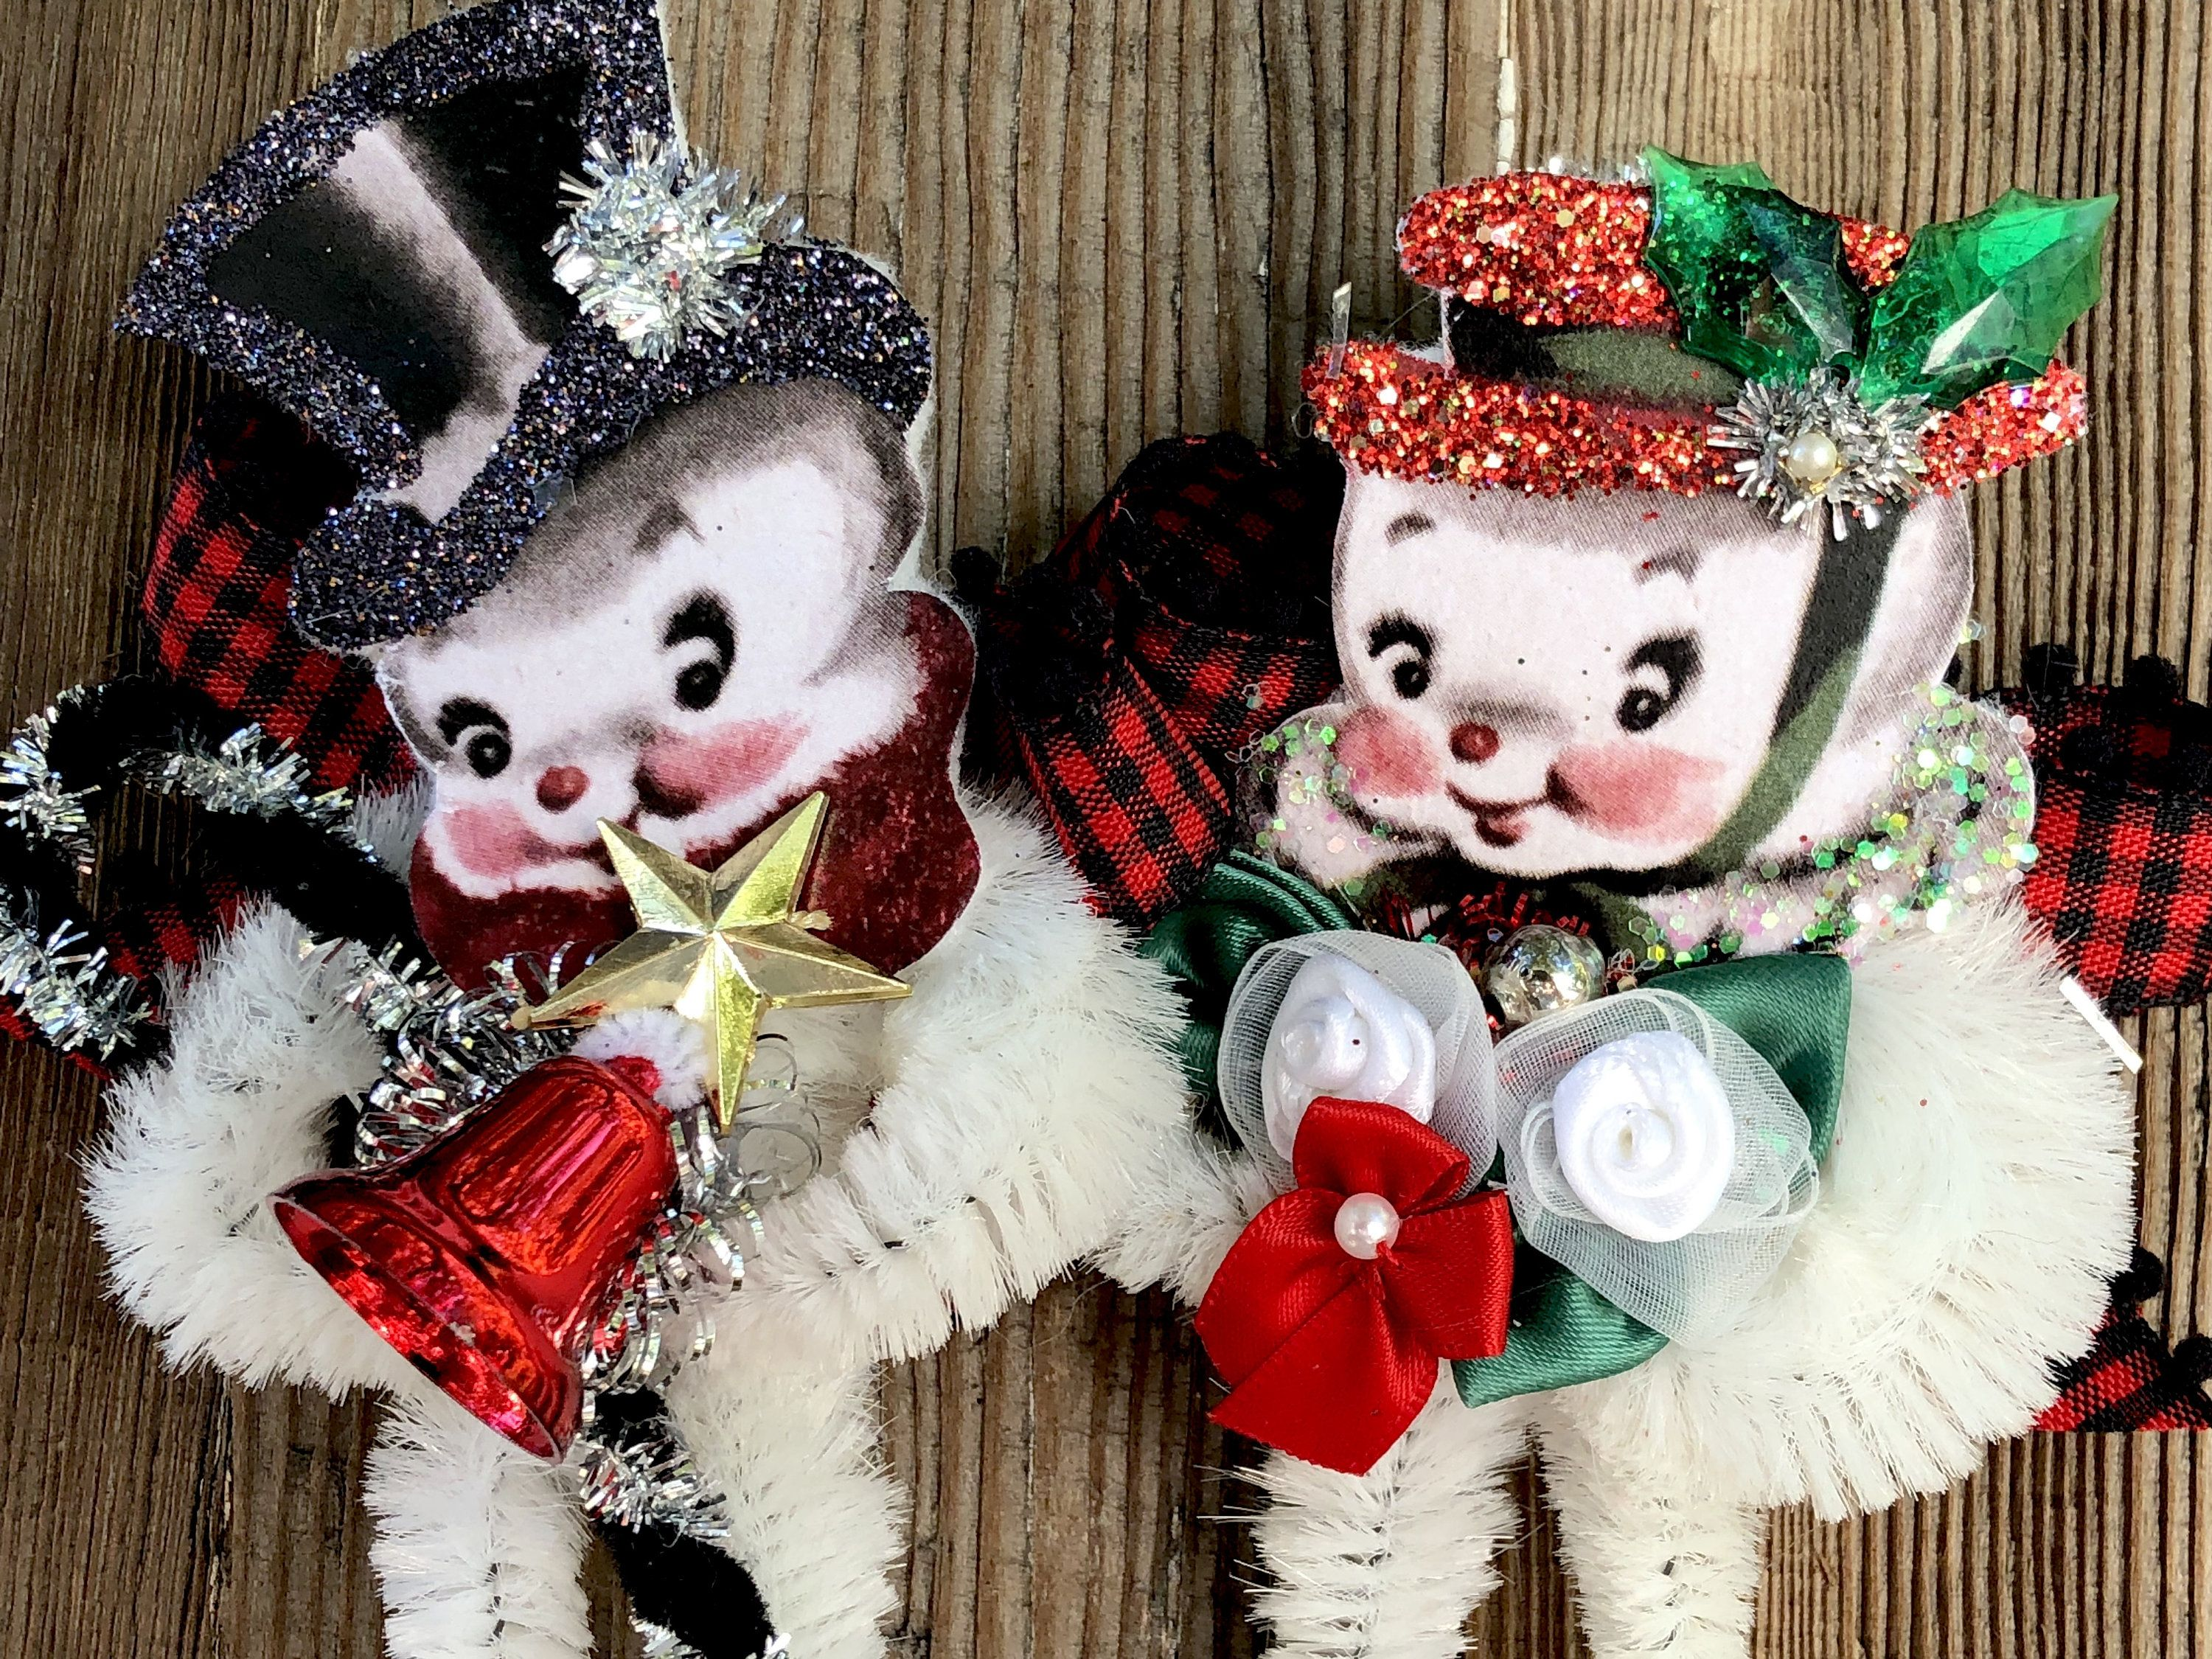 Snowman Christmas Ornament Vintage Chenille Set of 2 by